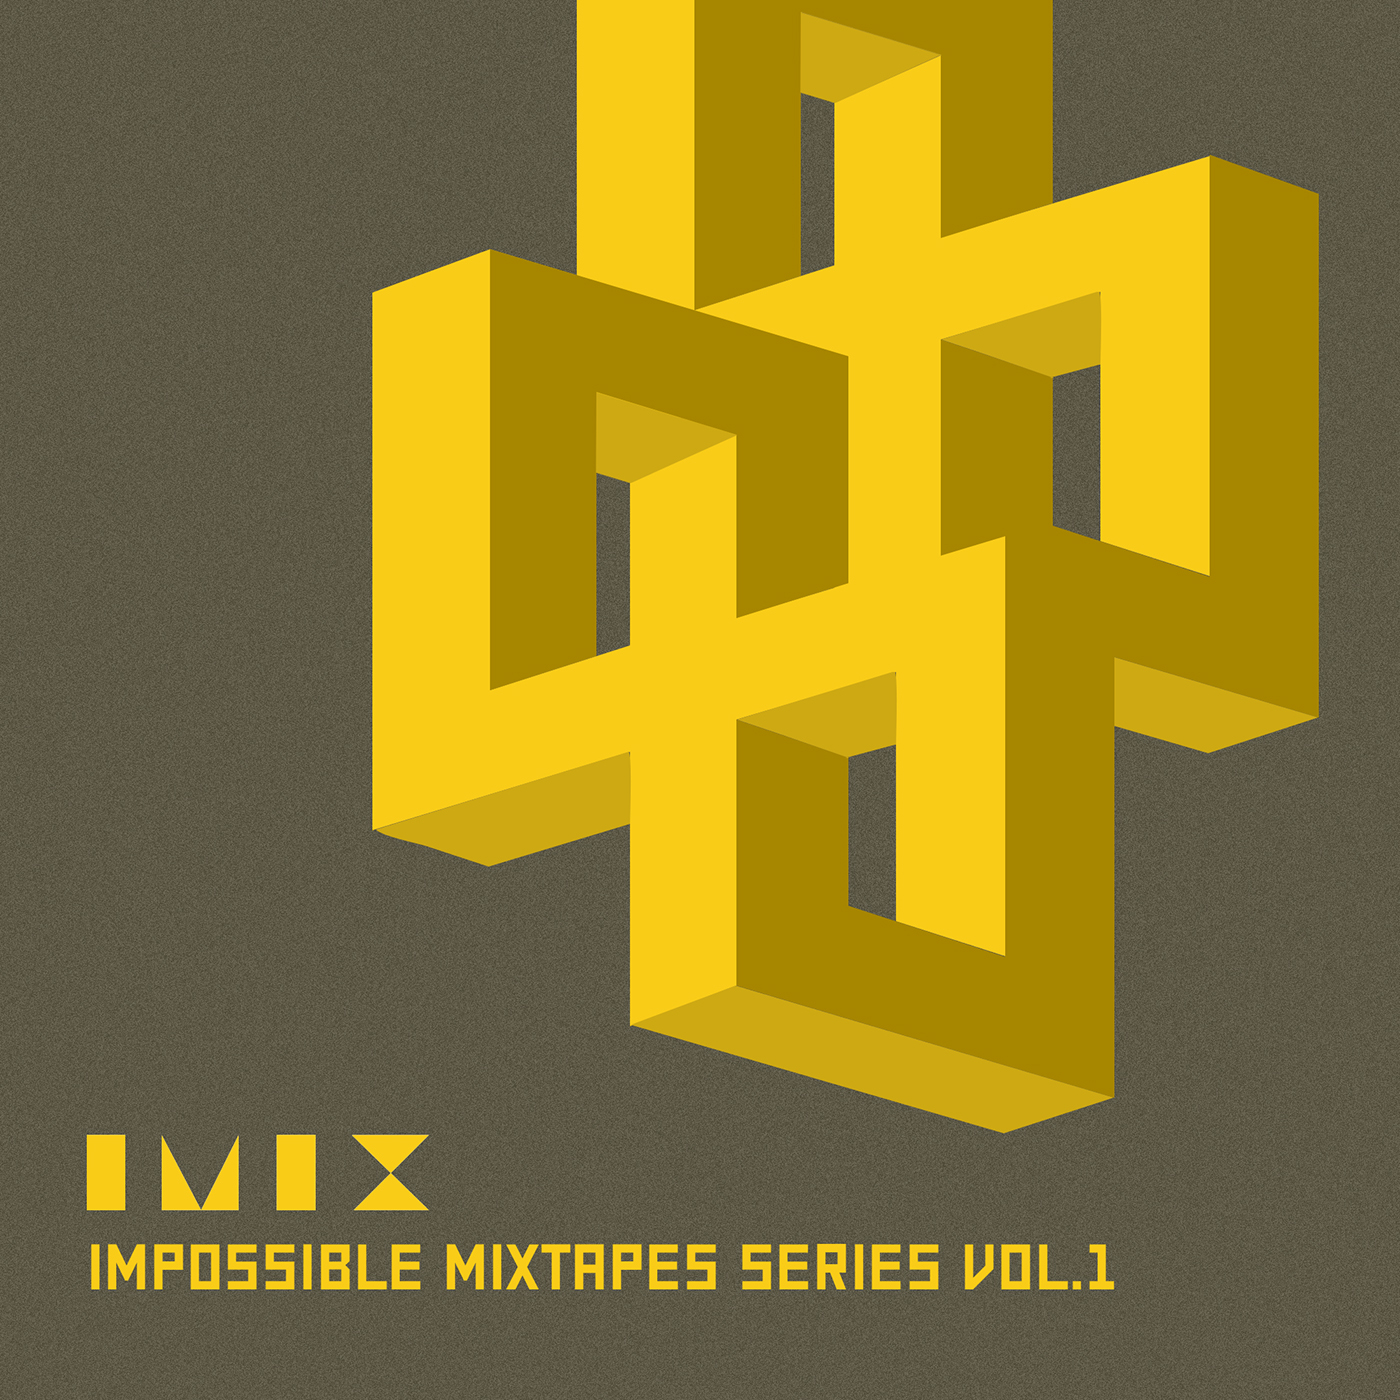 impossible mixtapes series cd cover art on behance